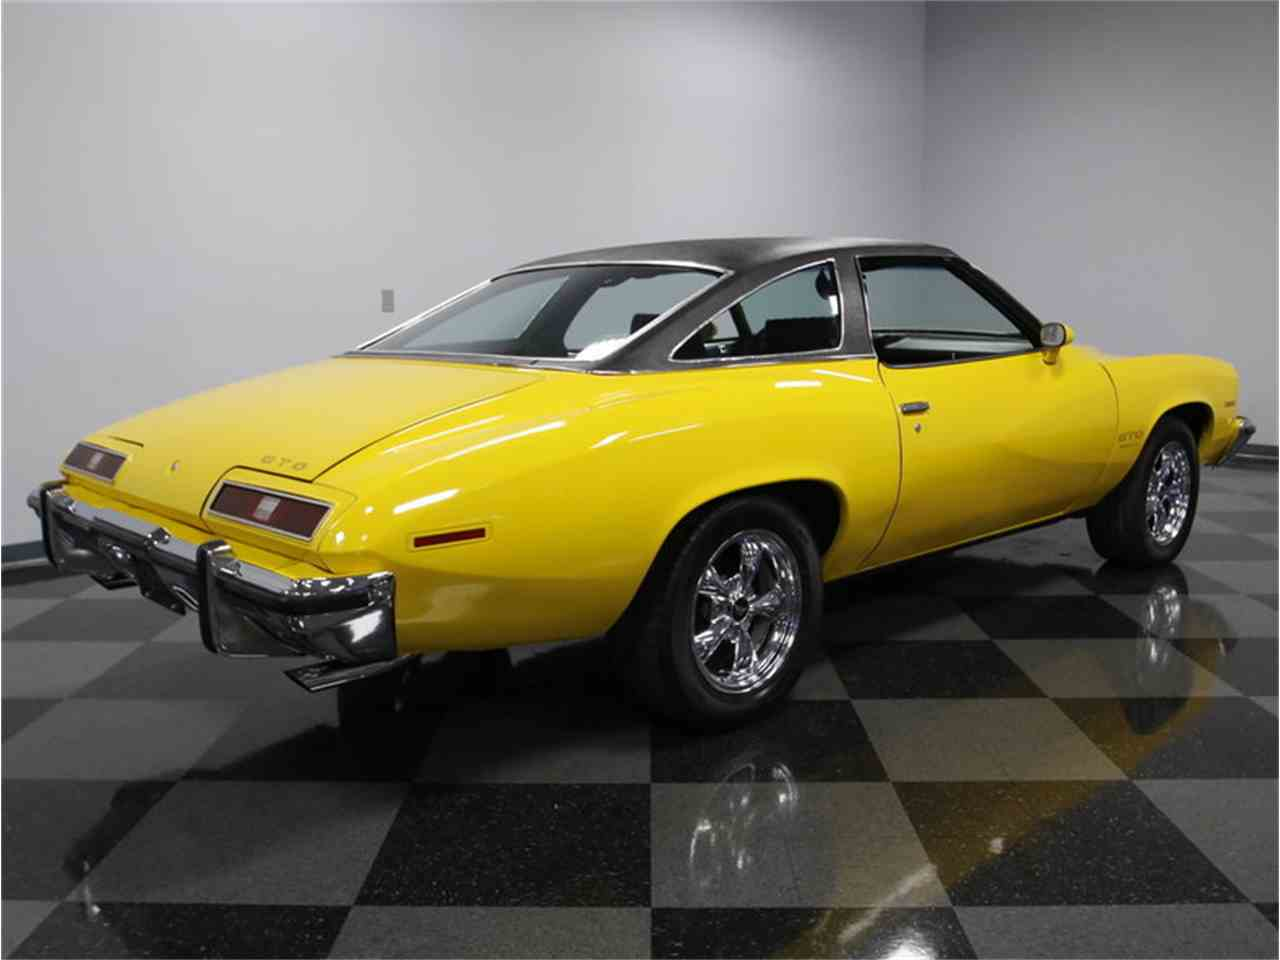 Large Picture of '73 GTO located in Concord North Carolina - $22,995.00 - KCDQ